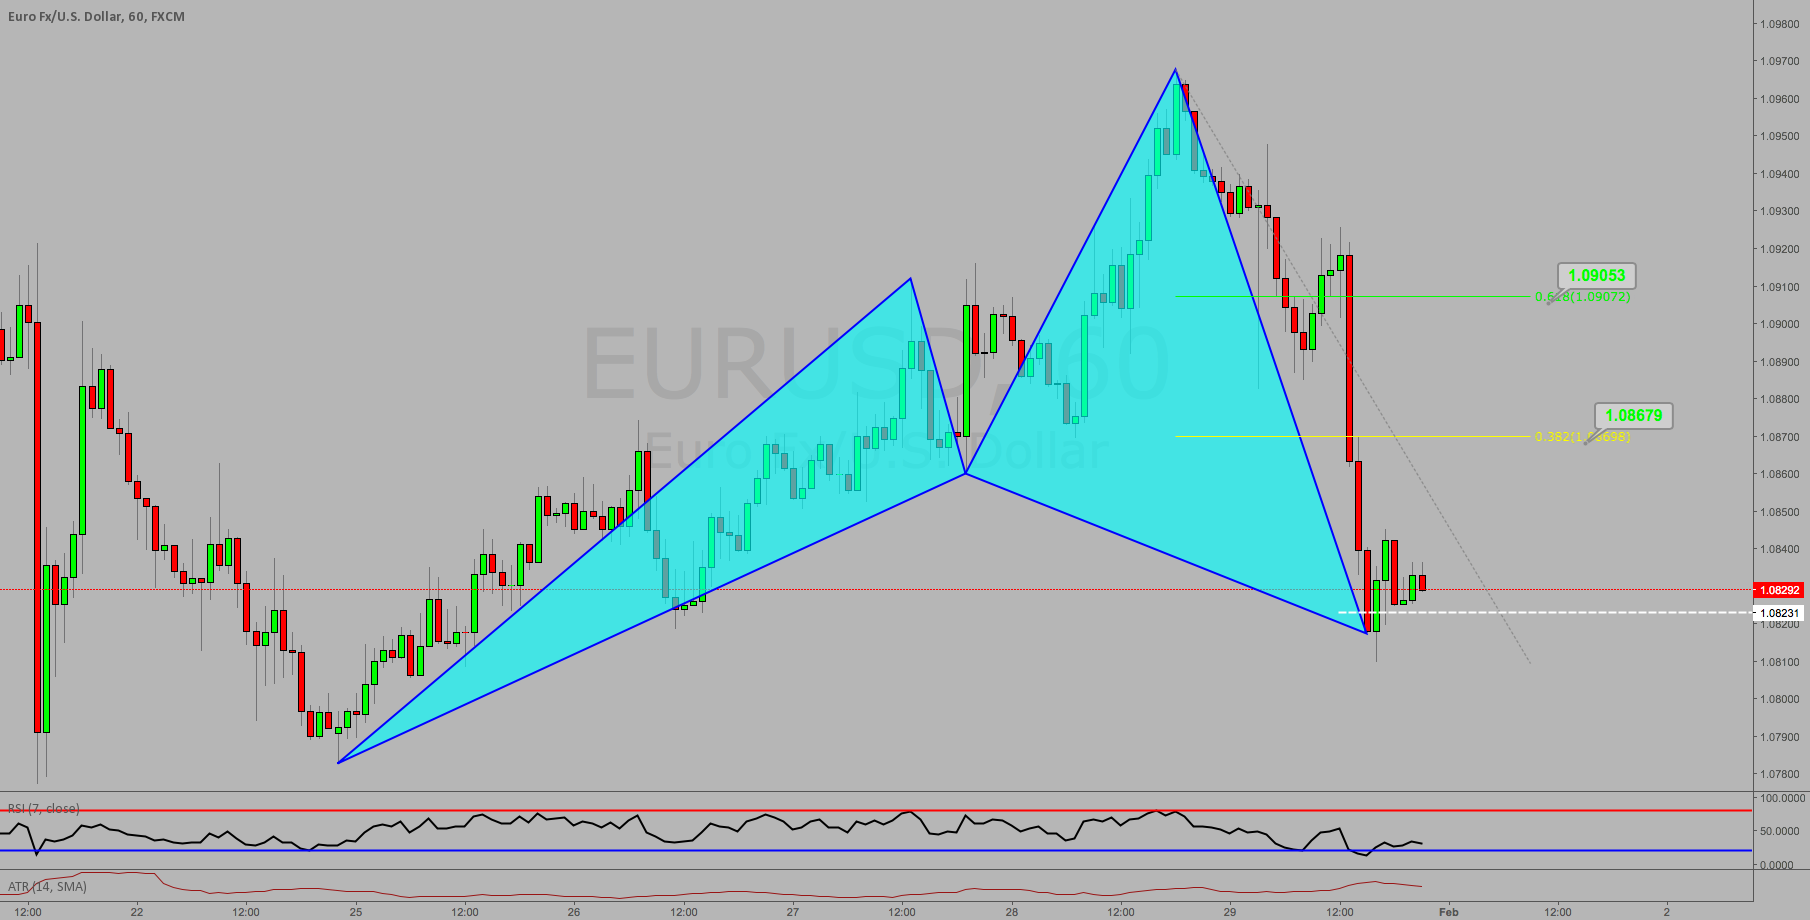 WATCH AT MARKET OPEN: BULLISH CYPHER ON $EURUSD AT MARKET